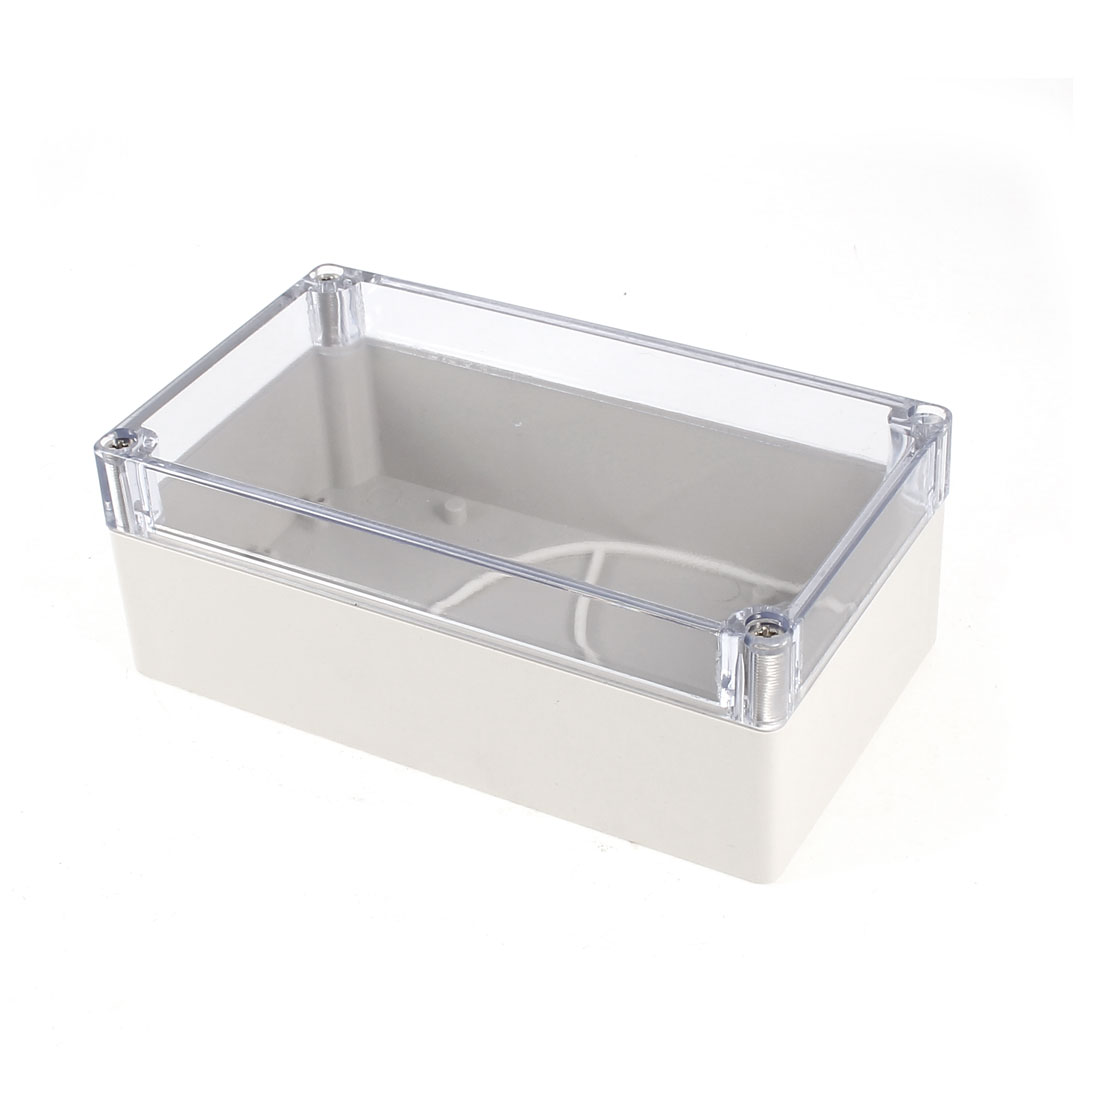 158mm x 90mm x 60mm Waterproof Plastic Enclosure Case DIY Junction Box